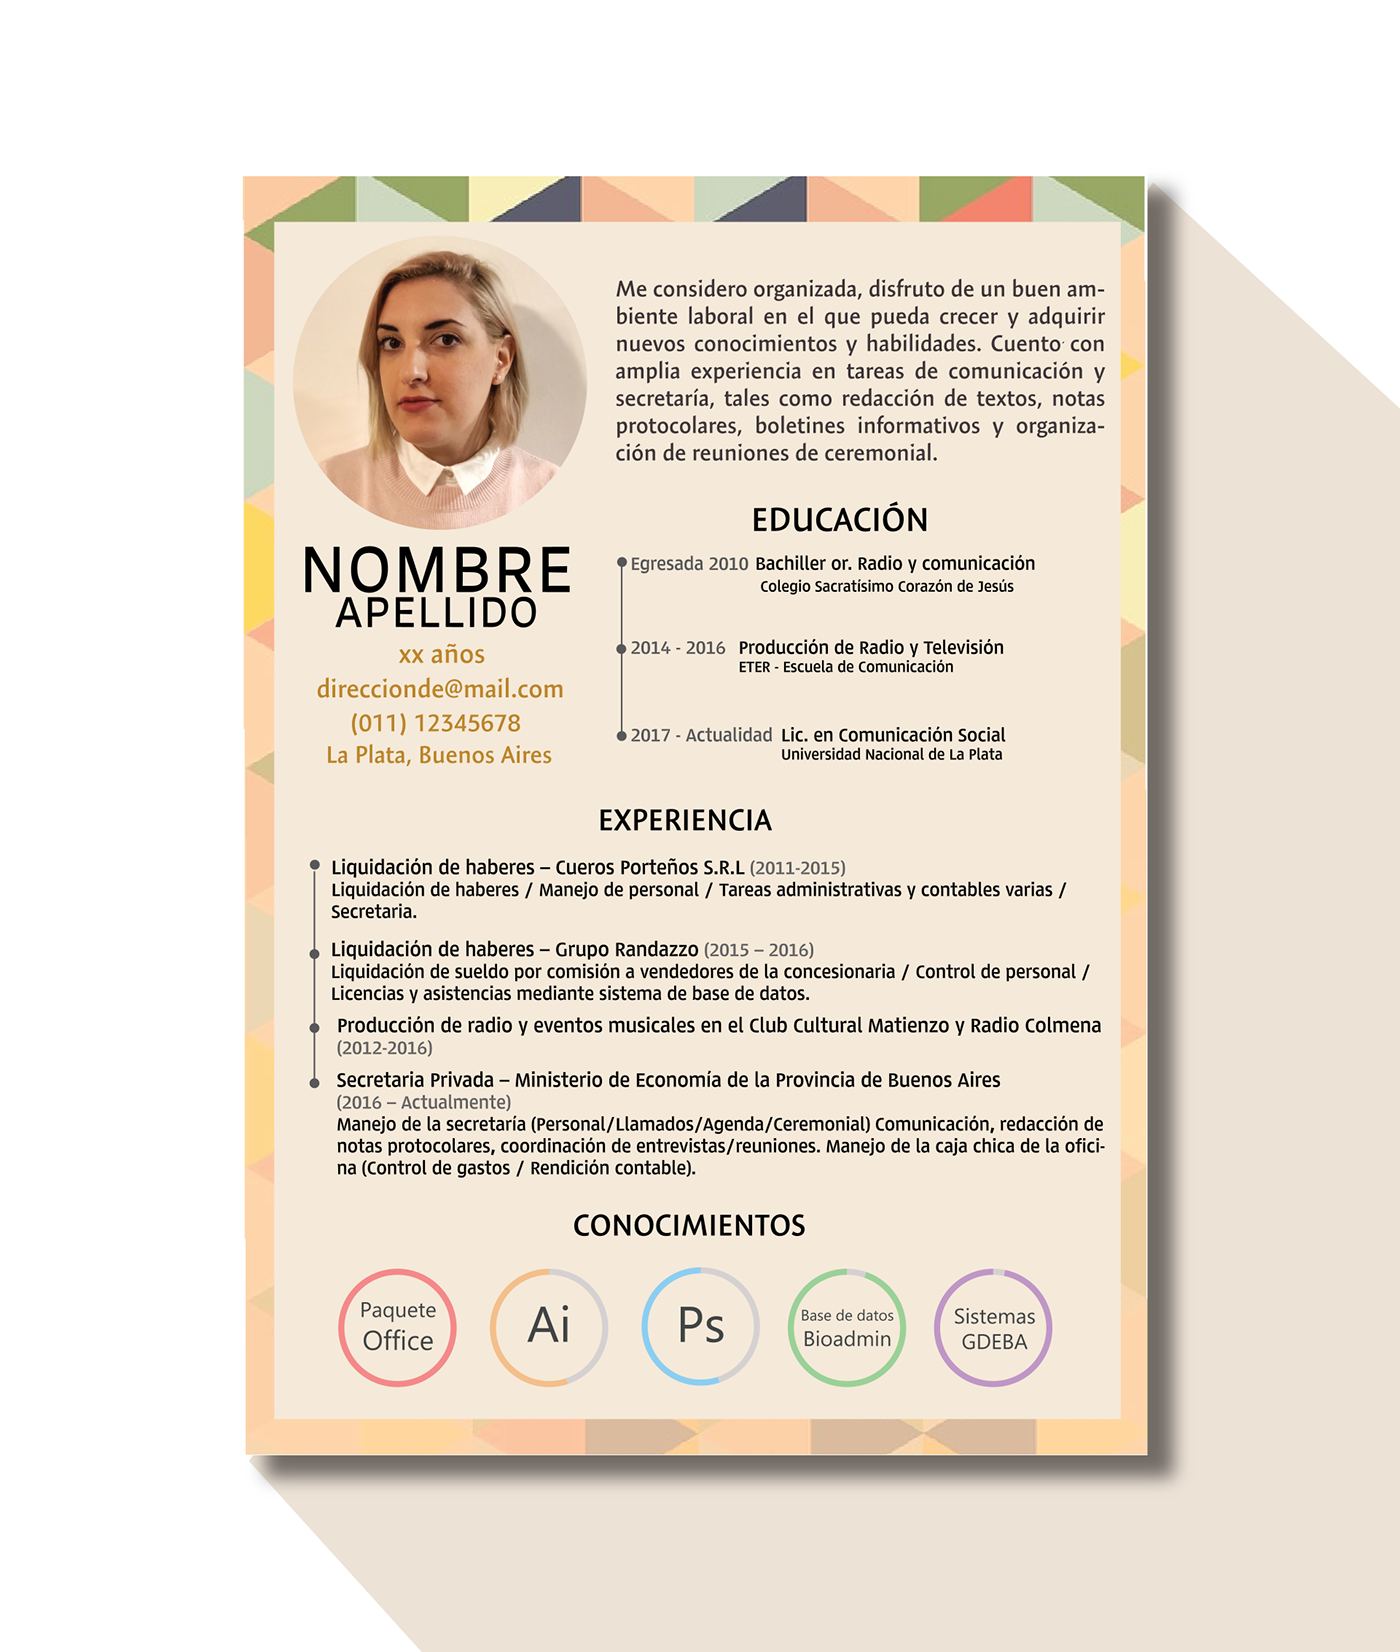 Personalized Curriculum Vitae On Behance